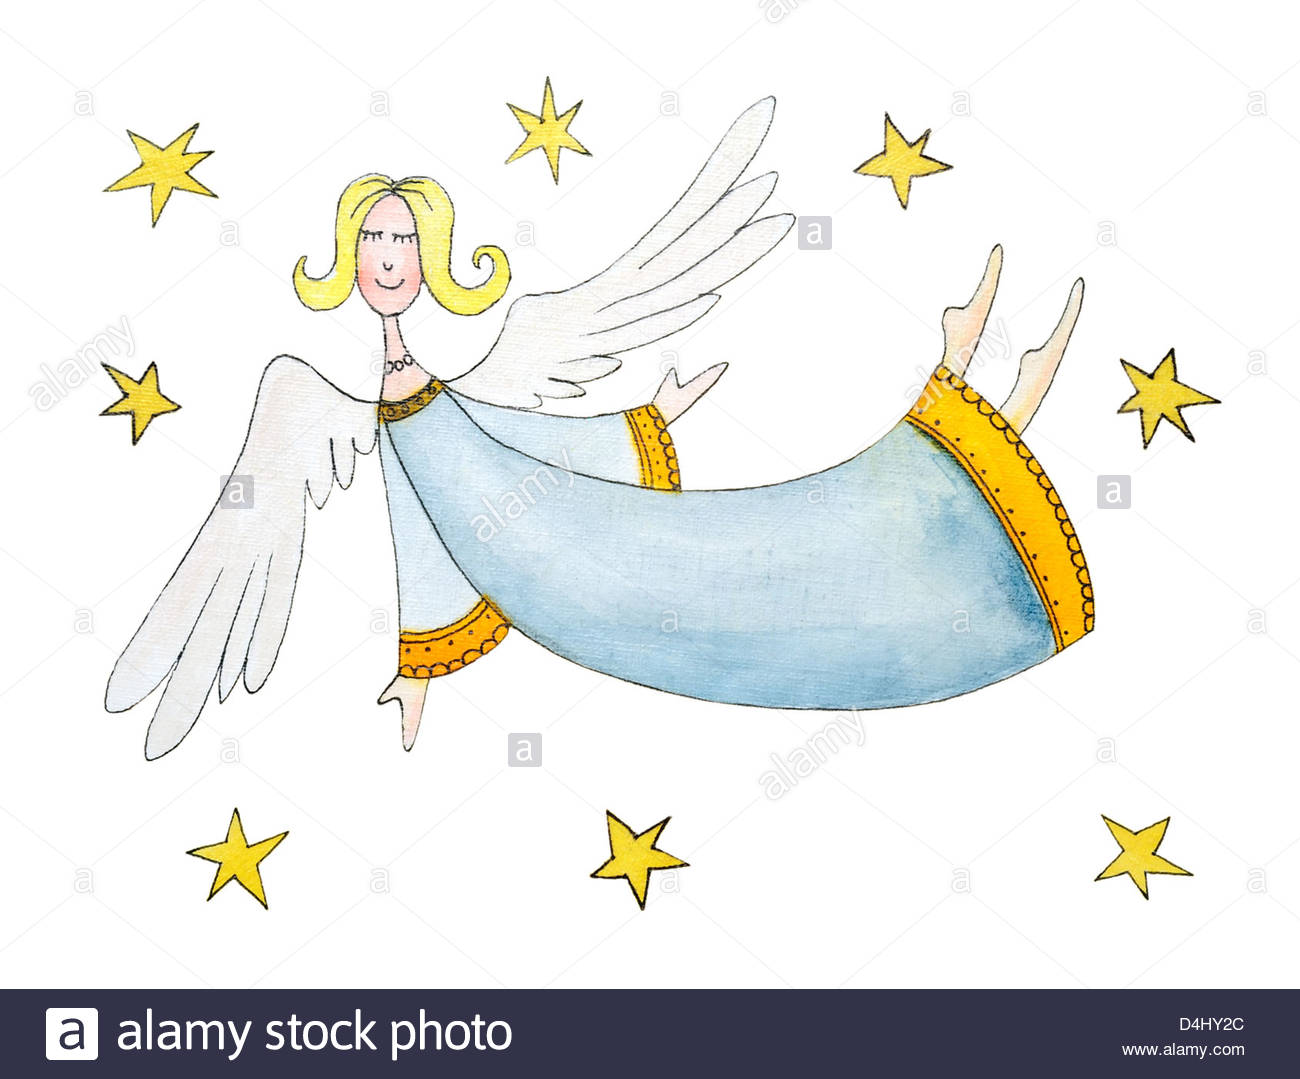 1300x1079 Angel With Stars, Child's Drawing, Watercolor Painting, Cartoon